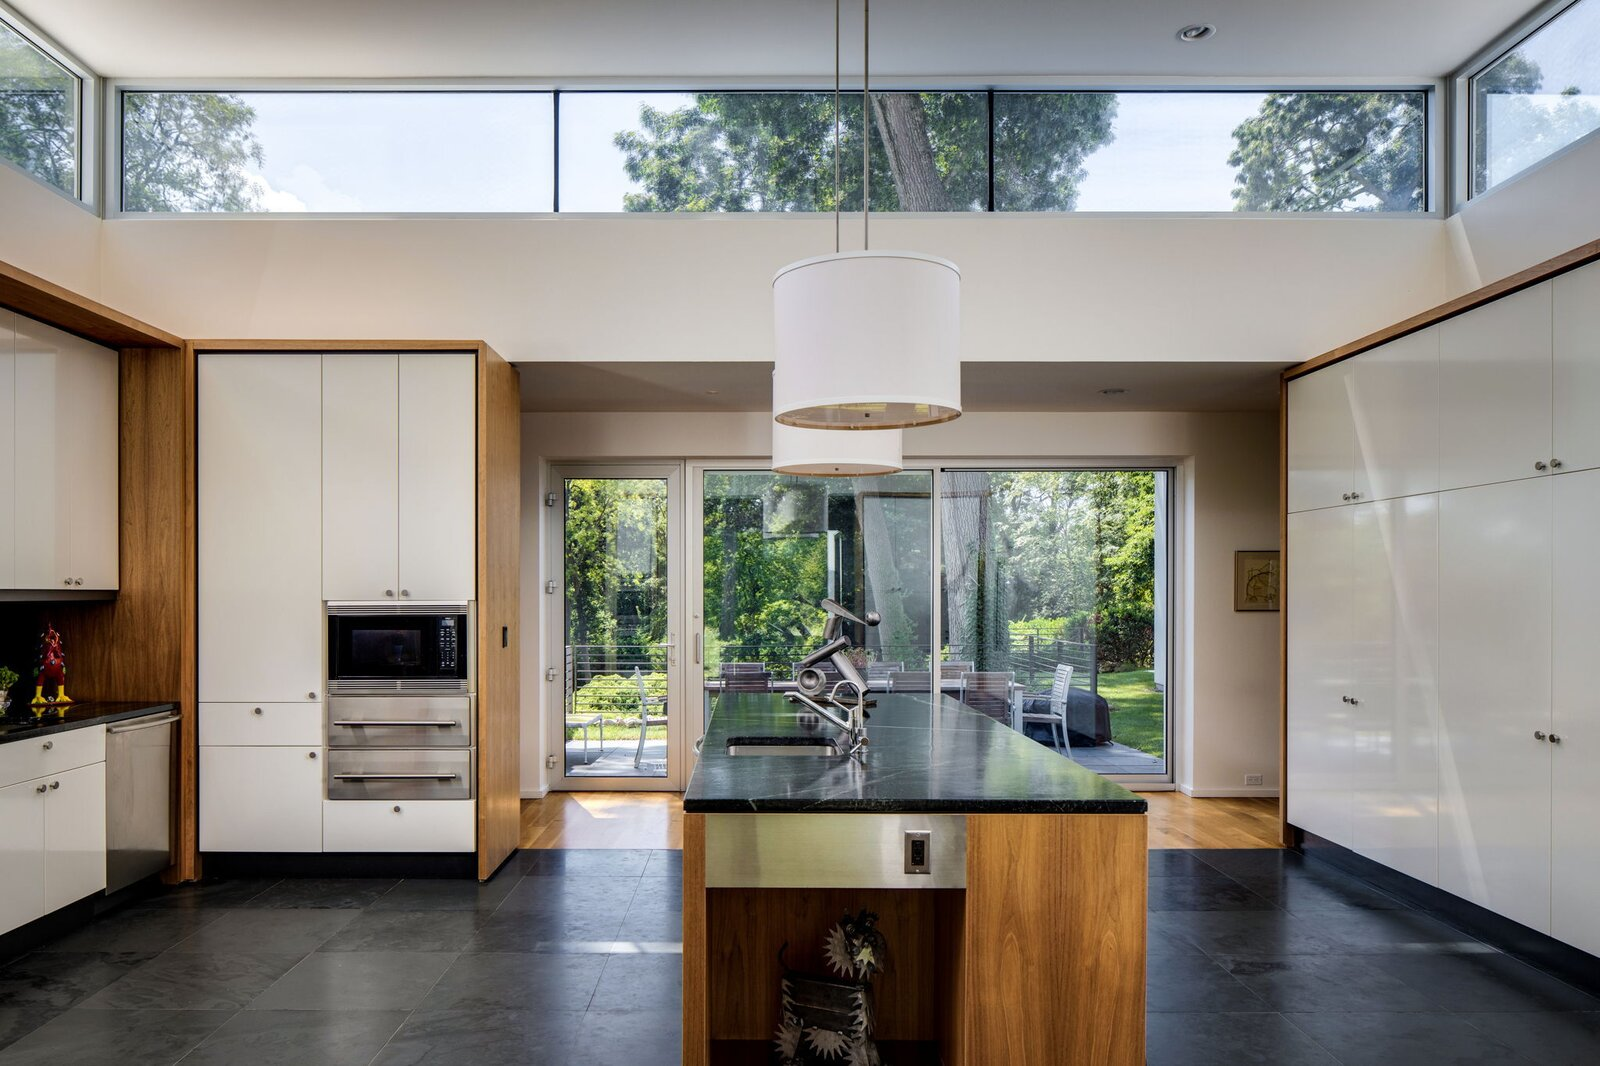 Kitchen New clerestory windows admit abundant light to the kitchen.   Photo 6 of 10 in After a Herculean Renovation, Architect Wallace Harrison's Landmarked Home Seeks a New Caretaker